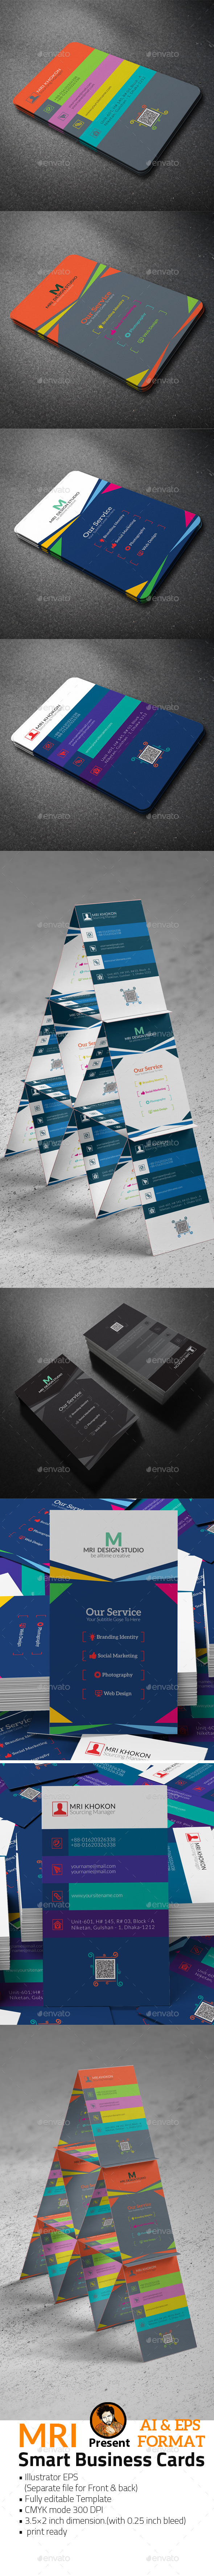 Smart Business Cards - Business Cards Print Templates